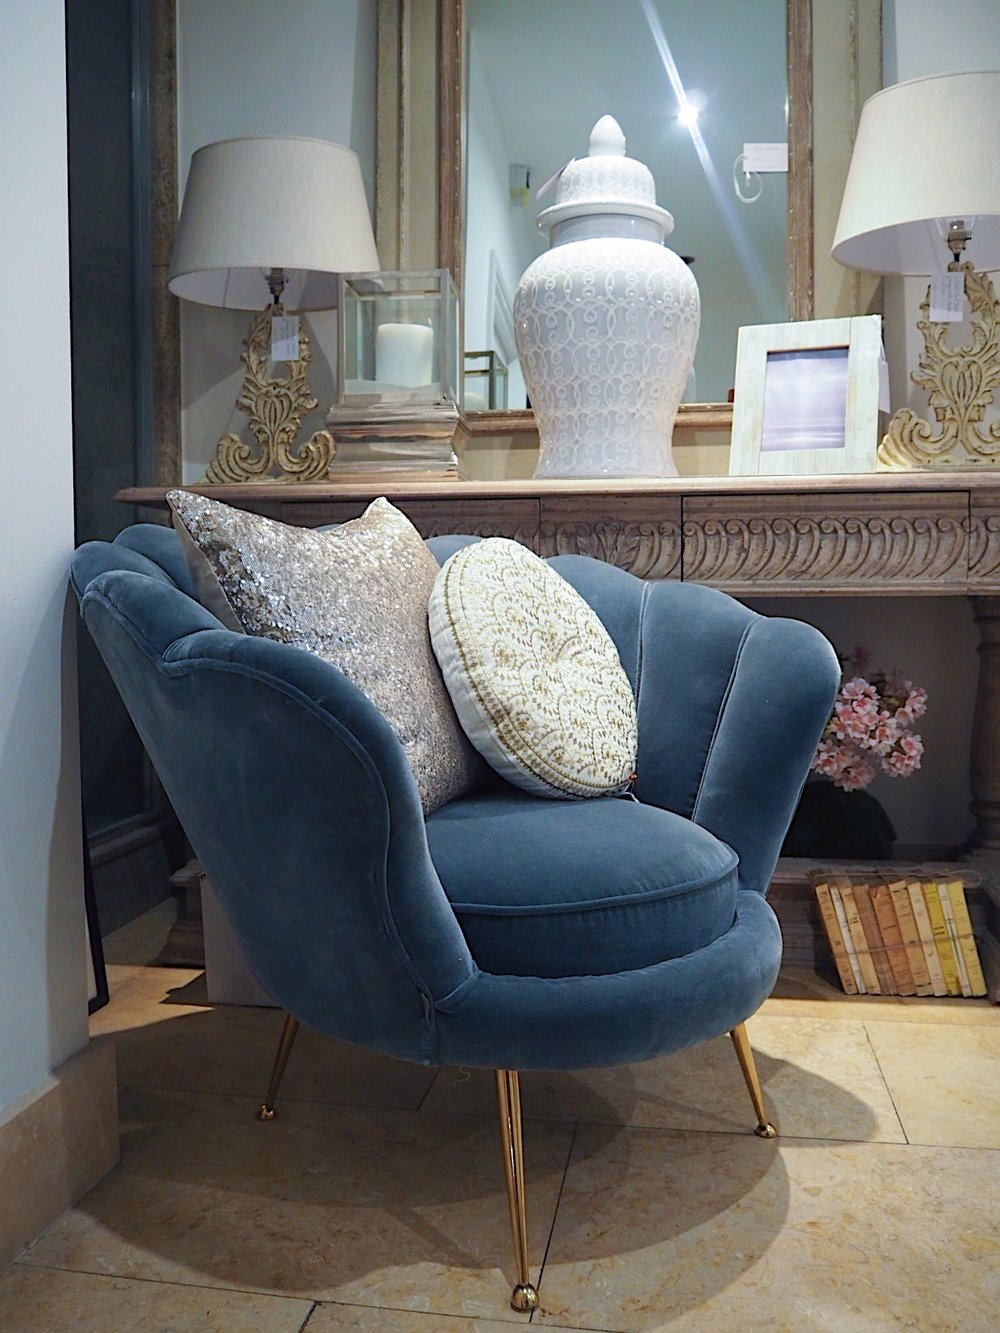 The Eicholtz Trapezium Armchair in blue